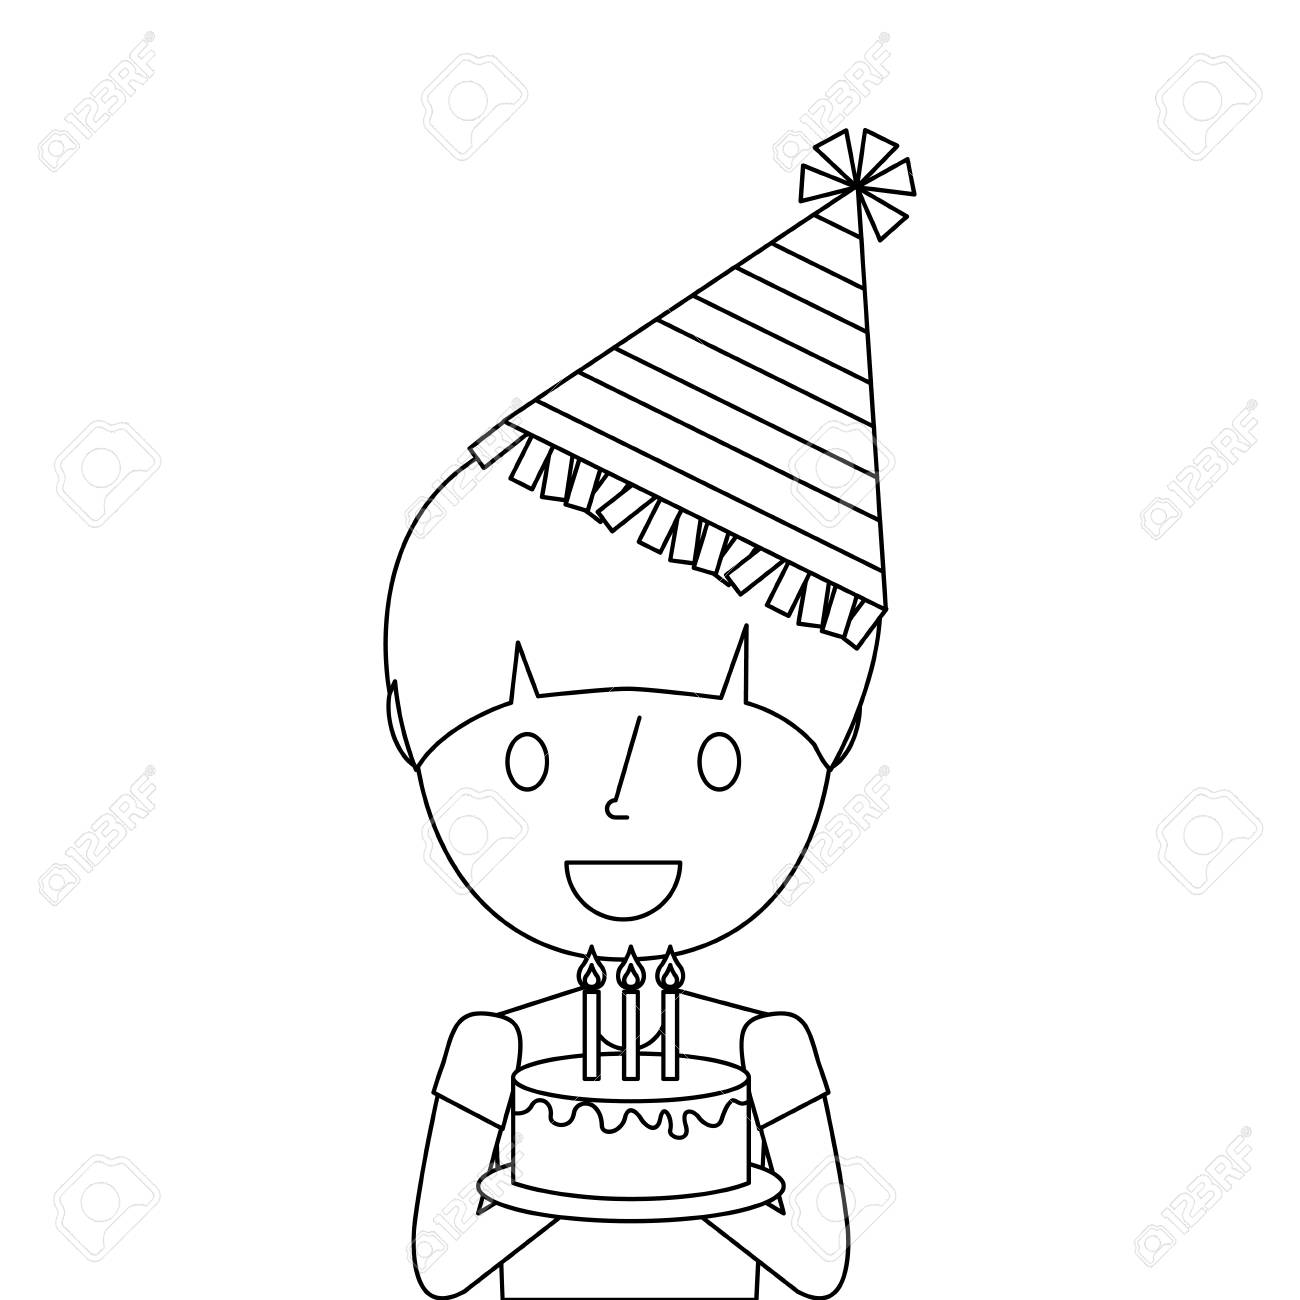 Cute Young Boy Holding Birthday Cake Wearing Party Hat Vector